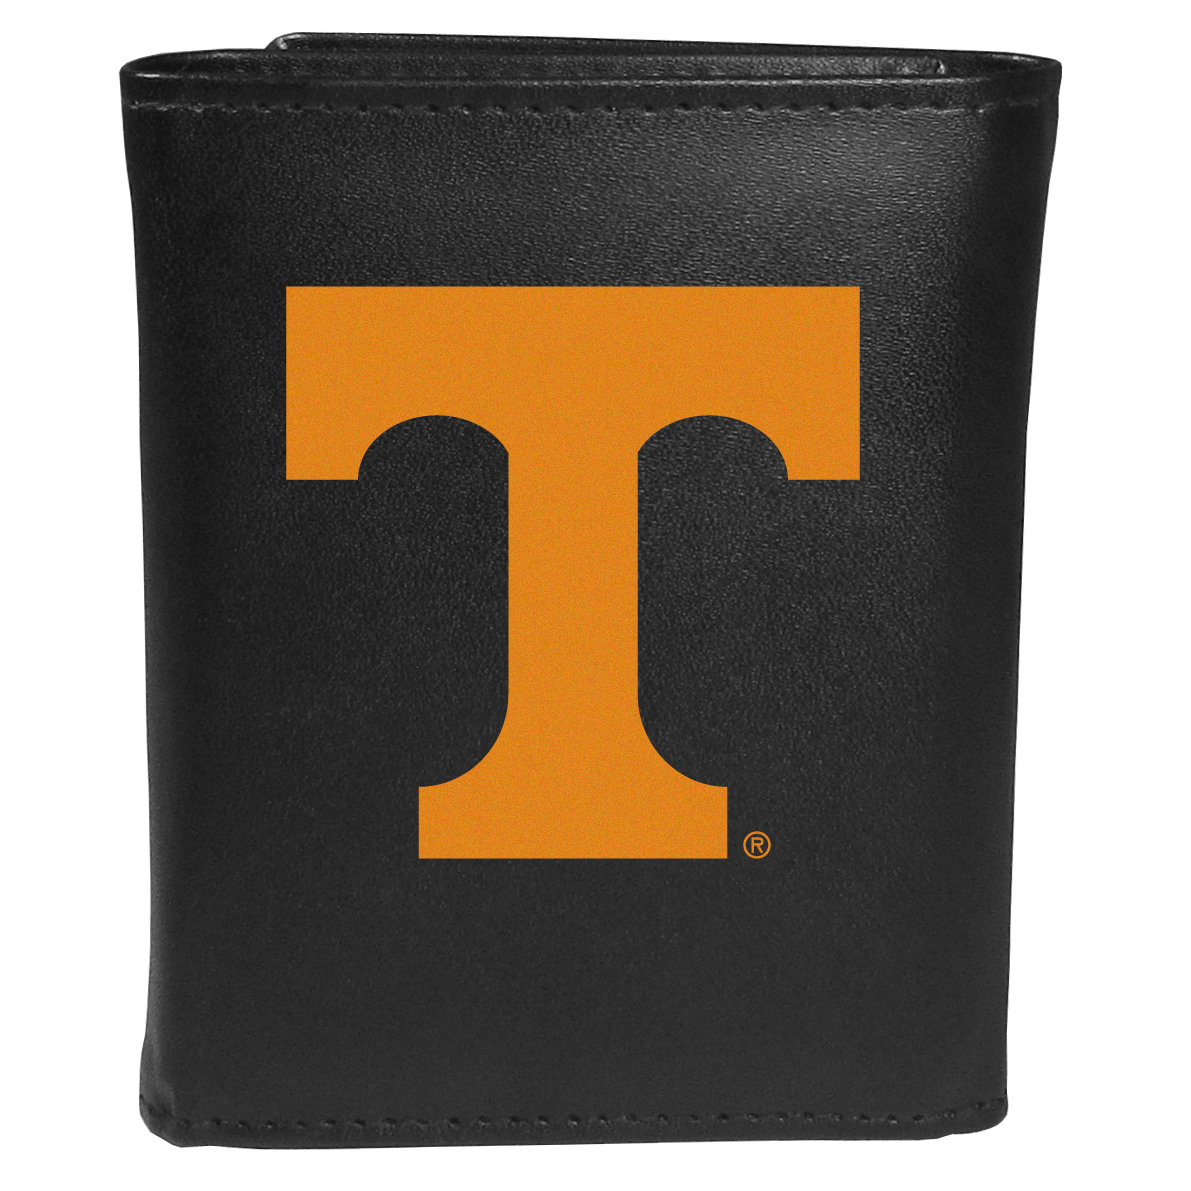 Tennessee Volunteers Tri-fold Wallet Large Logo - Sports fans do not have to sacrifice style with this classic tri-fold wallet that sports theTennessee Volunteers?extra large logo. This men's fashion accessory has a leather grain look and expert craftmanship for a quality wallet at a great price. The wallet features inner credit card slots, windowed ID slot and a large billfold pocket. The front of the wallet features an extra large printed team logo.